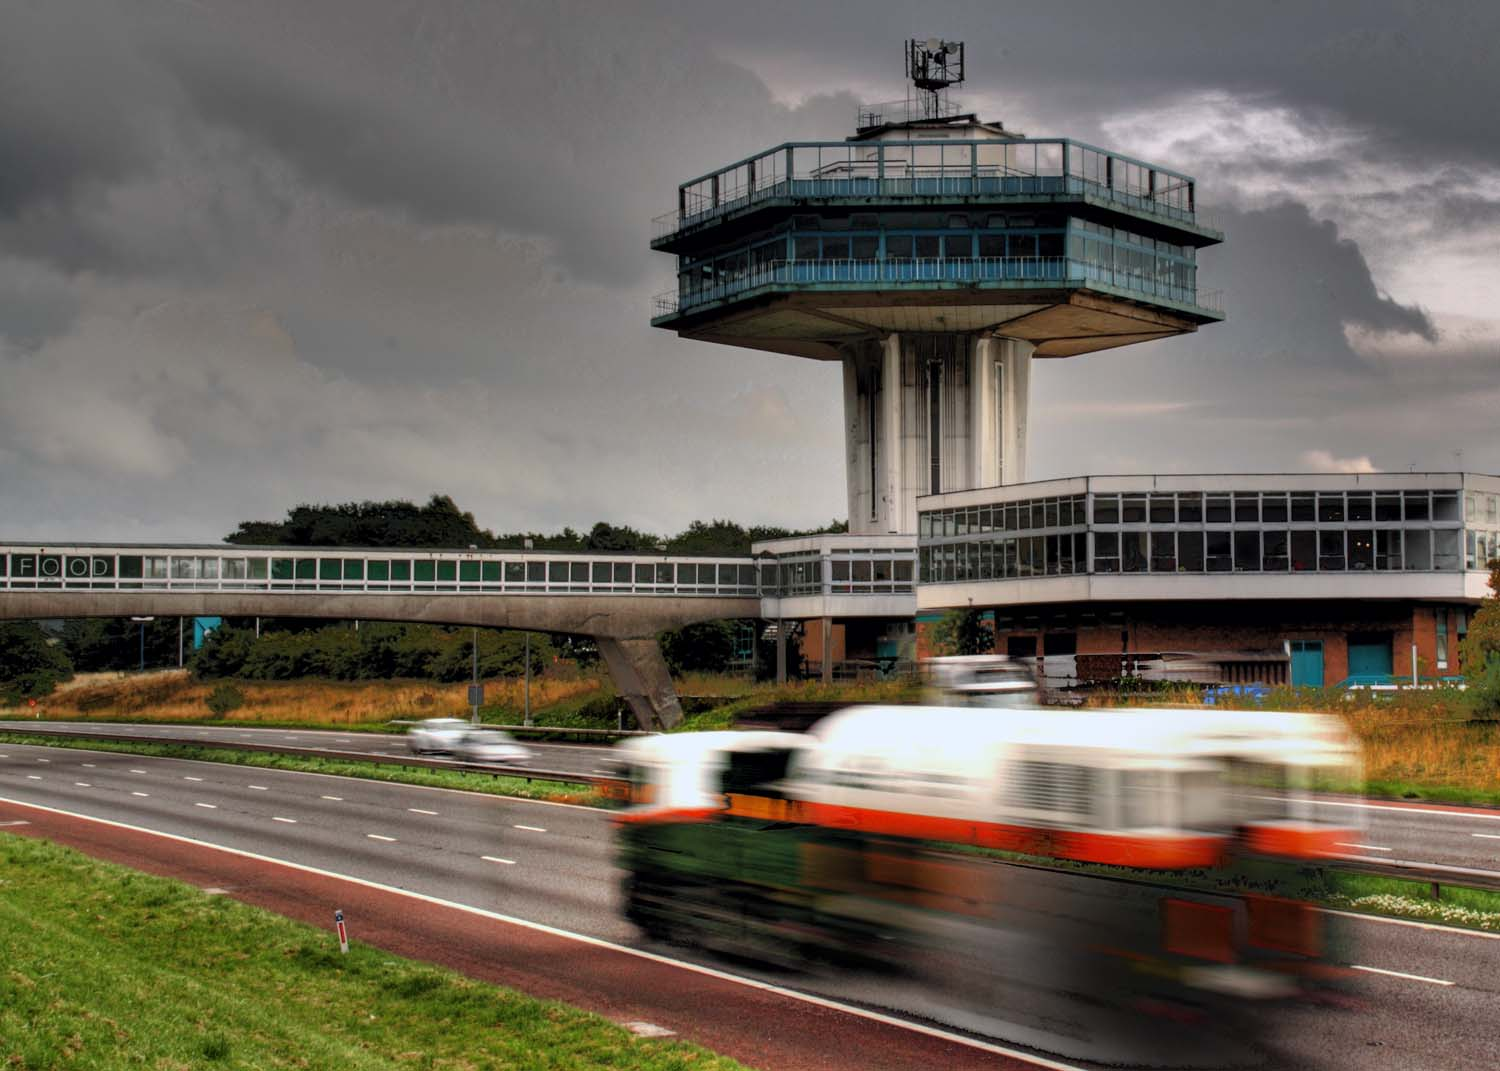 M6,Lancaster,Services,southbound,motorway,UK,lancashire,Moto,M&S,justfood,just,food,tower,Pennine Tower,pennine,five,star,loo,award,top,crapper,365days,building,buildings,built,architecture,sex,sexy,hotpix!